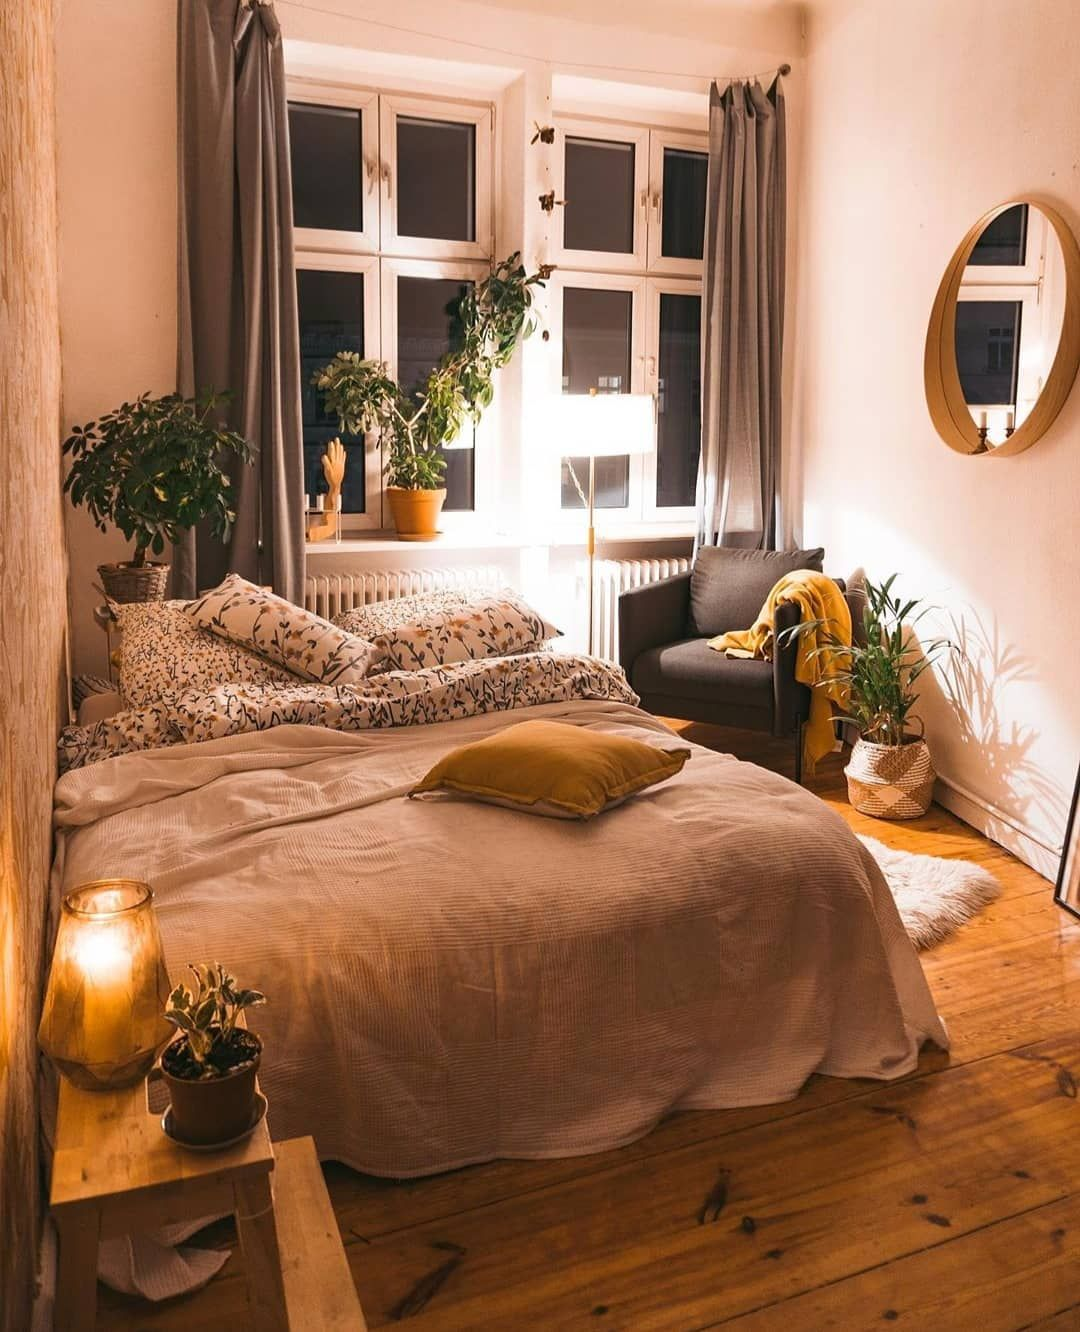 Check this 20 cheap things to maximize your small bedroom   Small ...